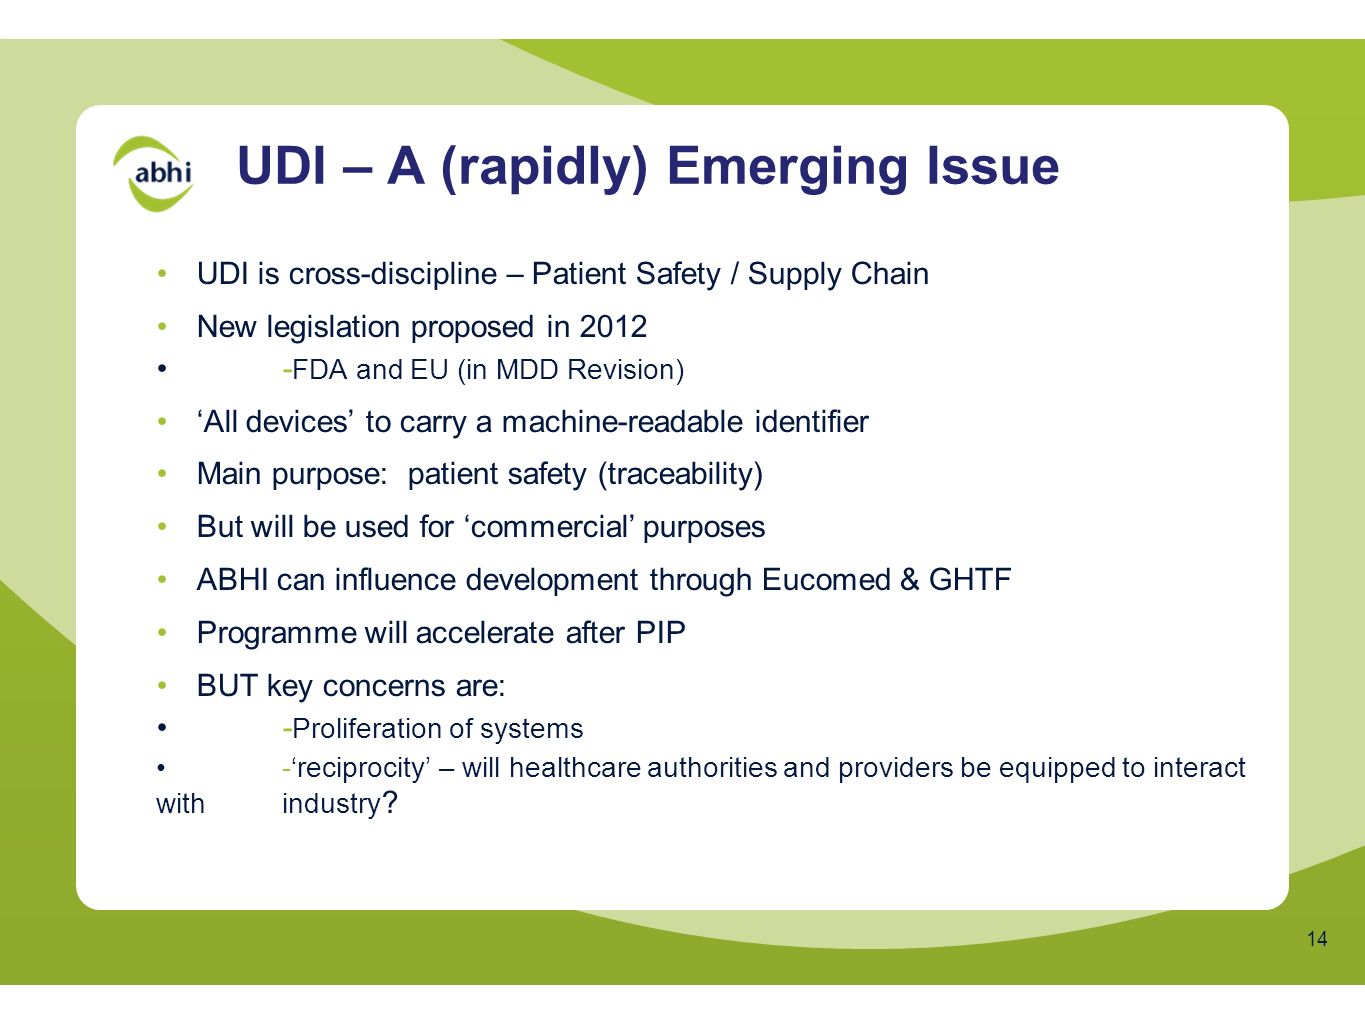 UDI – A (rapidly) Emerging Issue